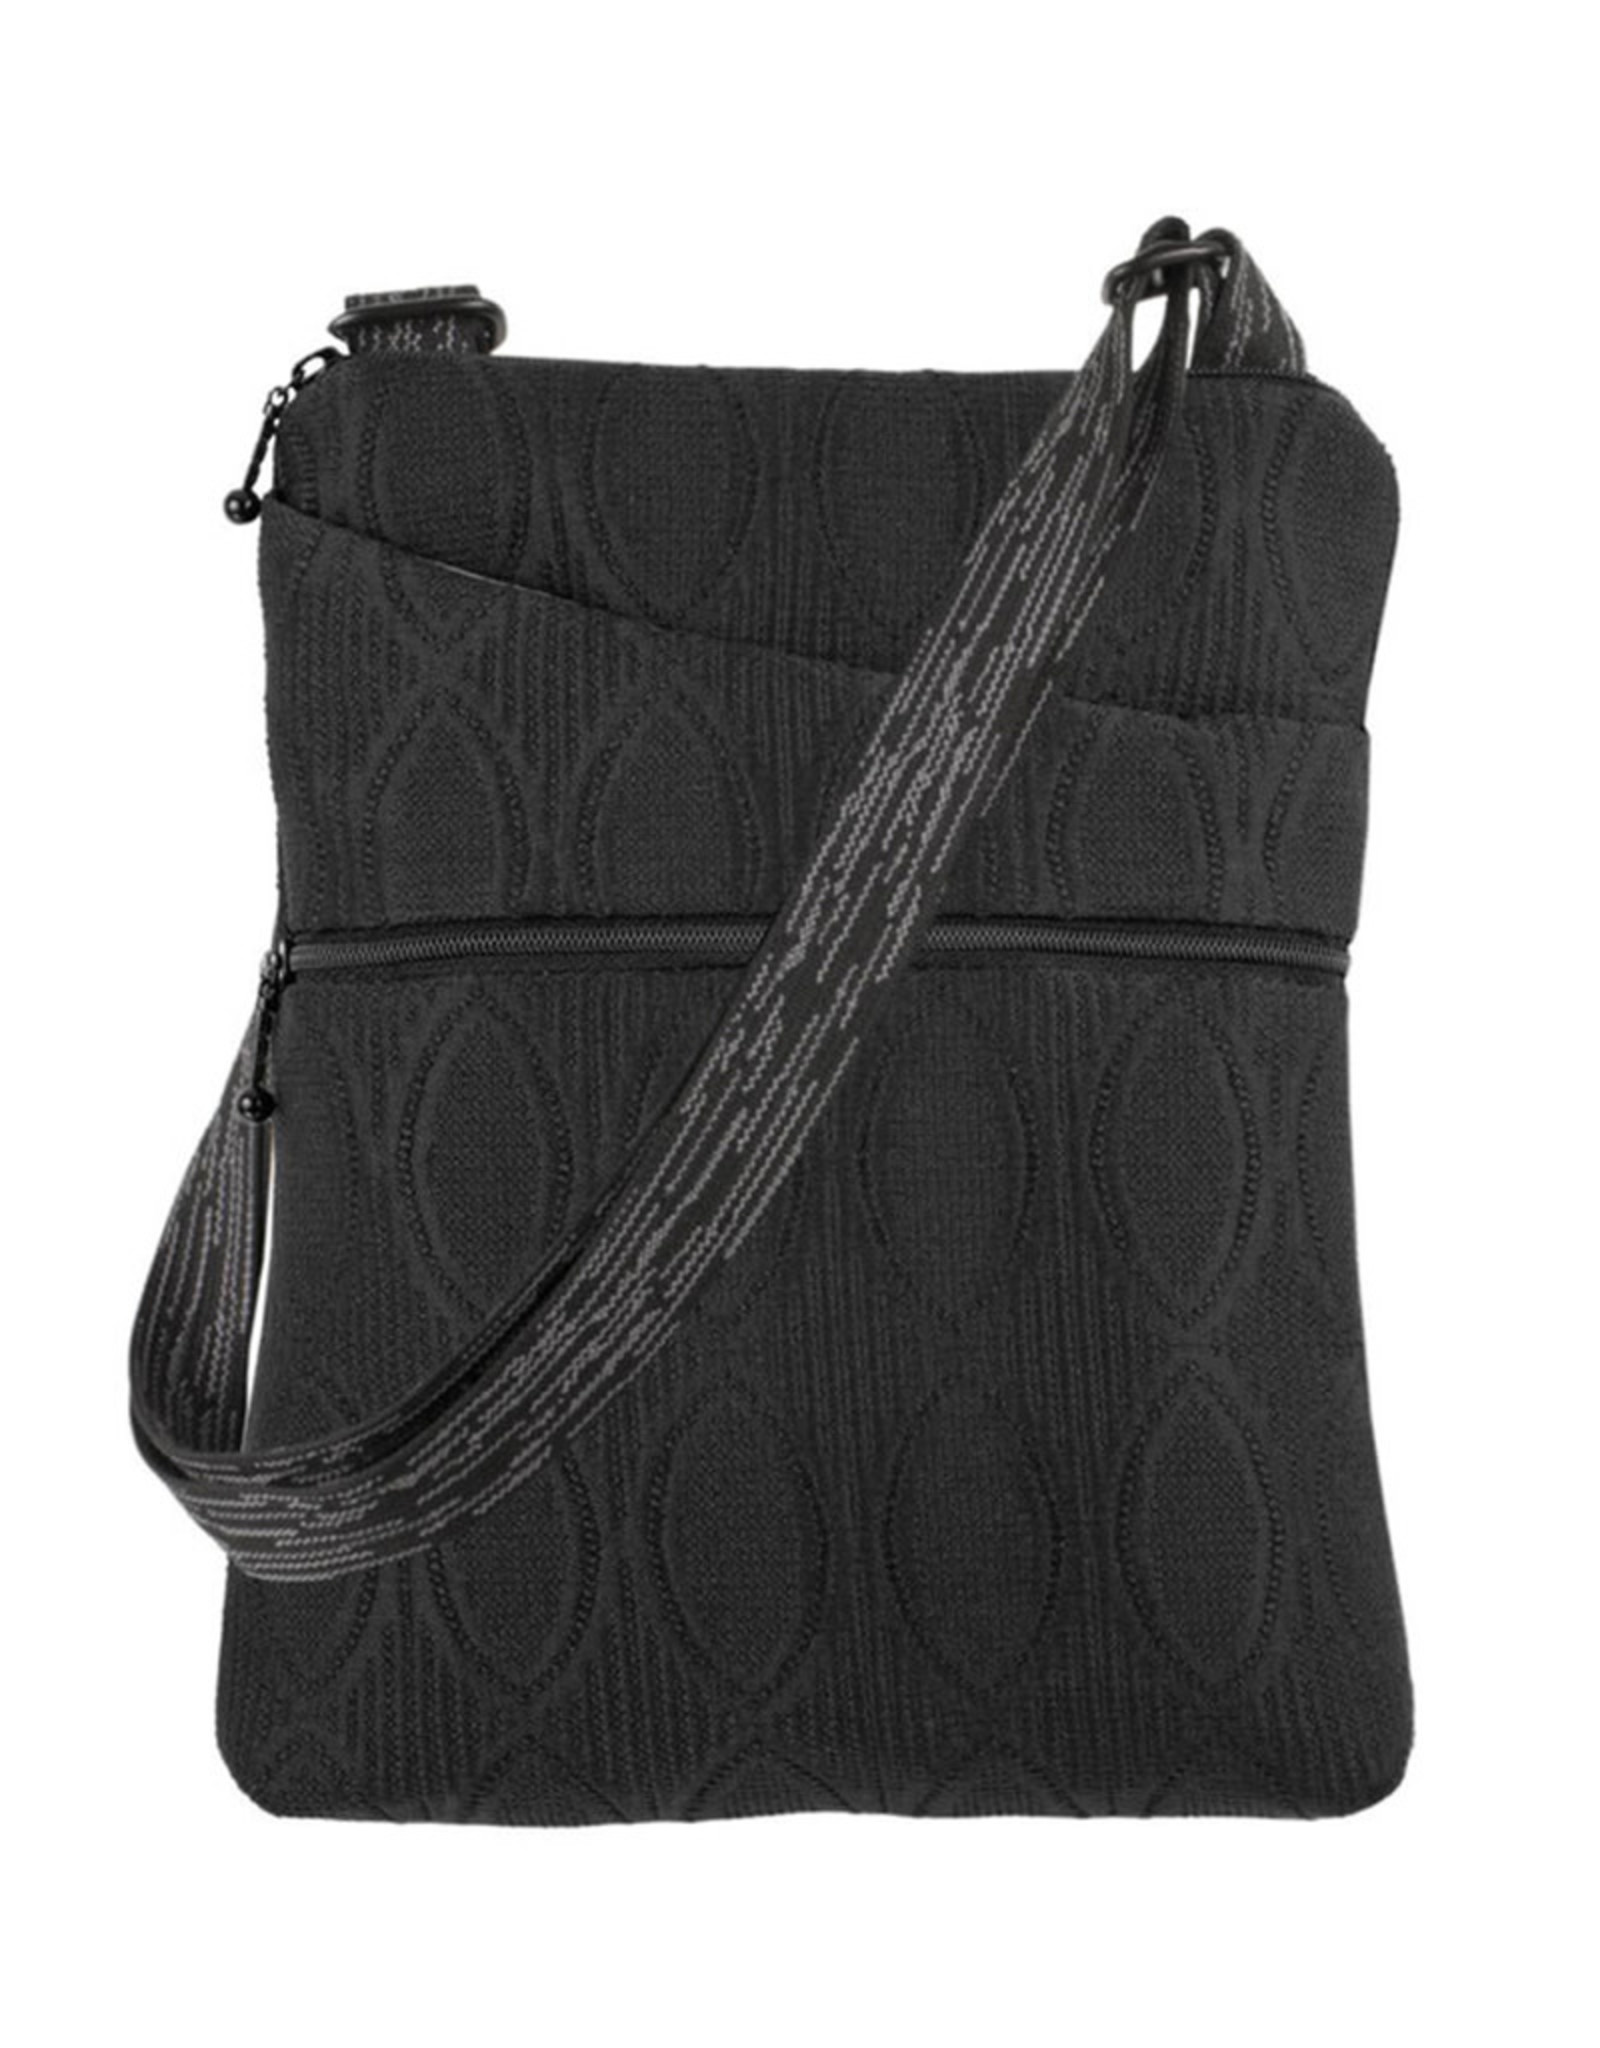 MARUCA MAMBO CROSSBODY POCKET BAG